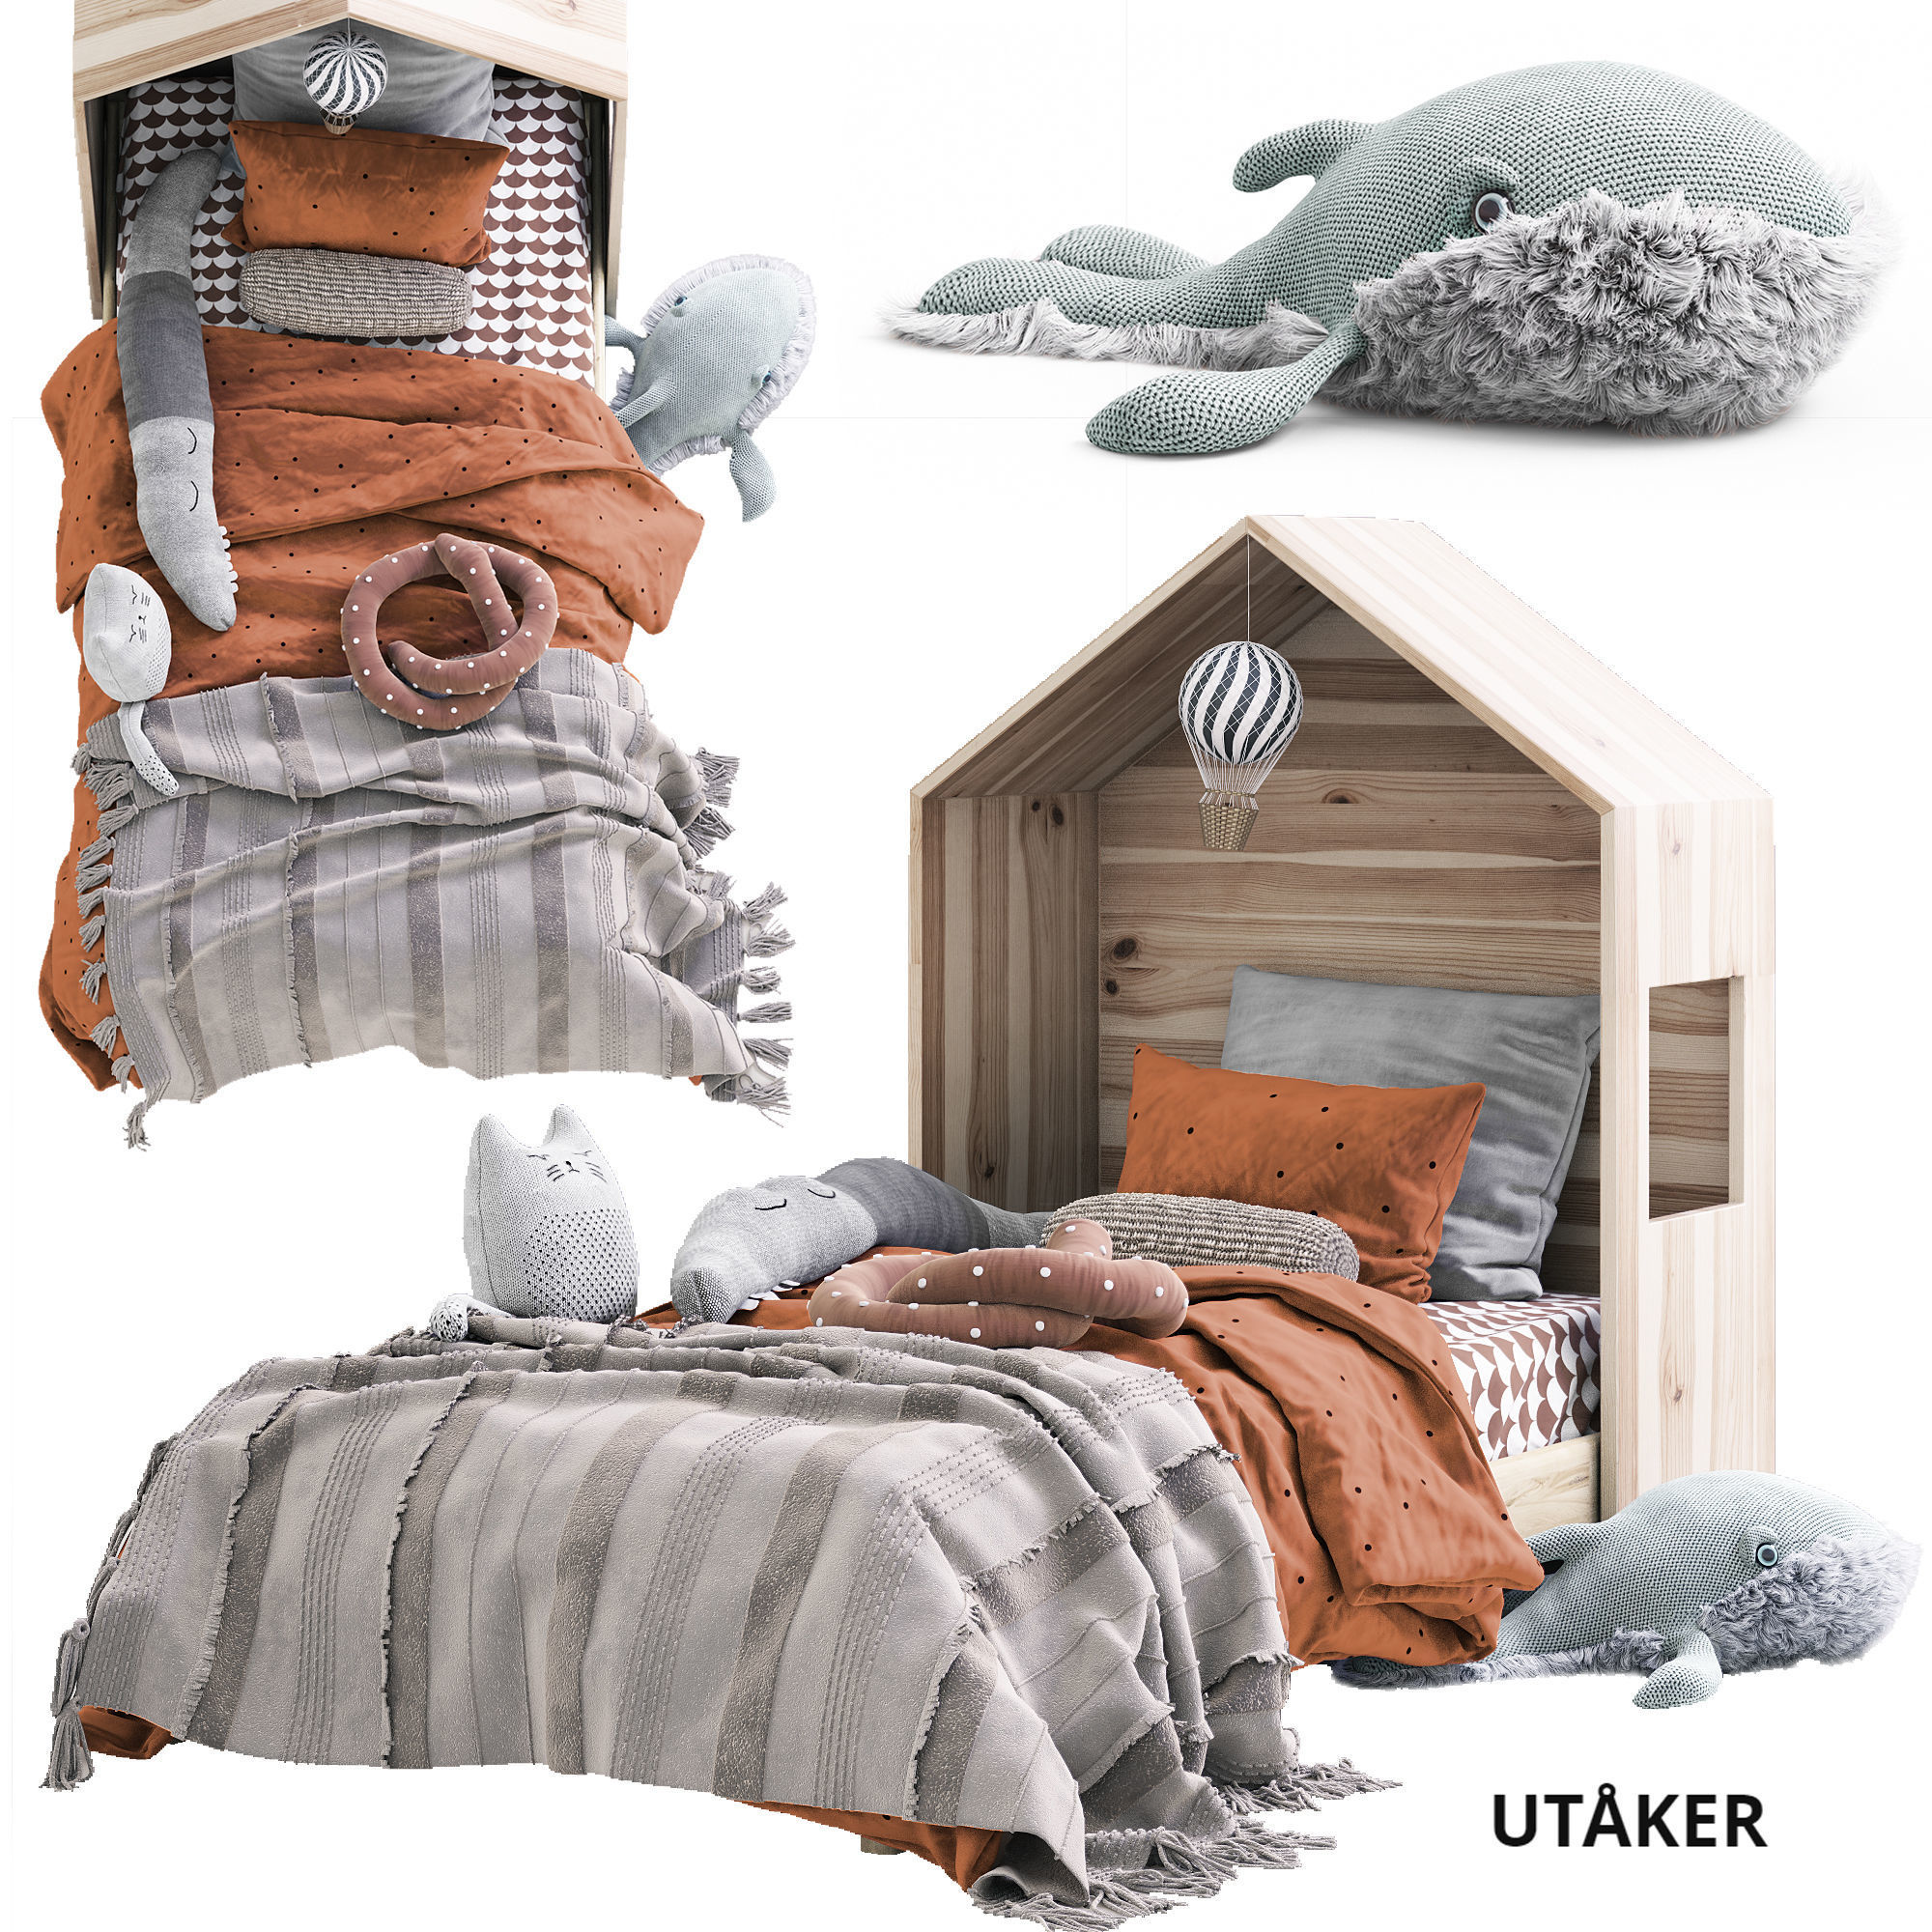 Children Bed Utaker Ikea With Toys 3d Cgtrader